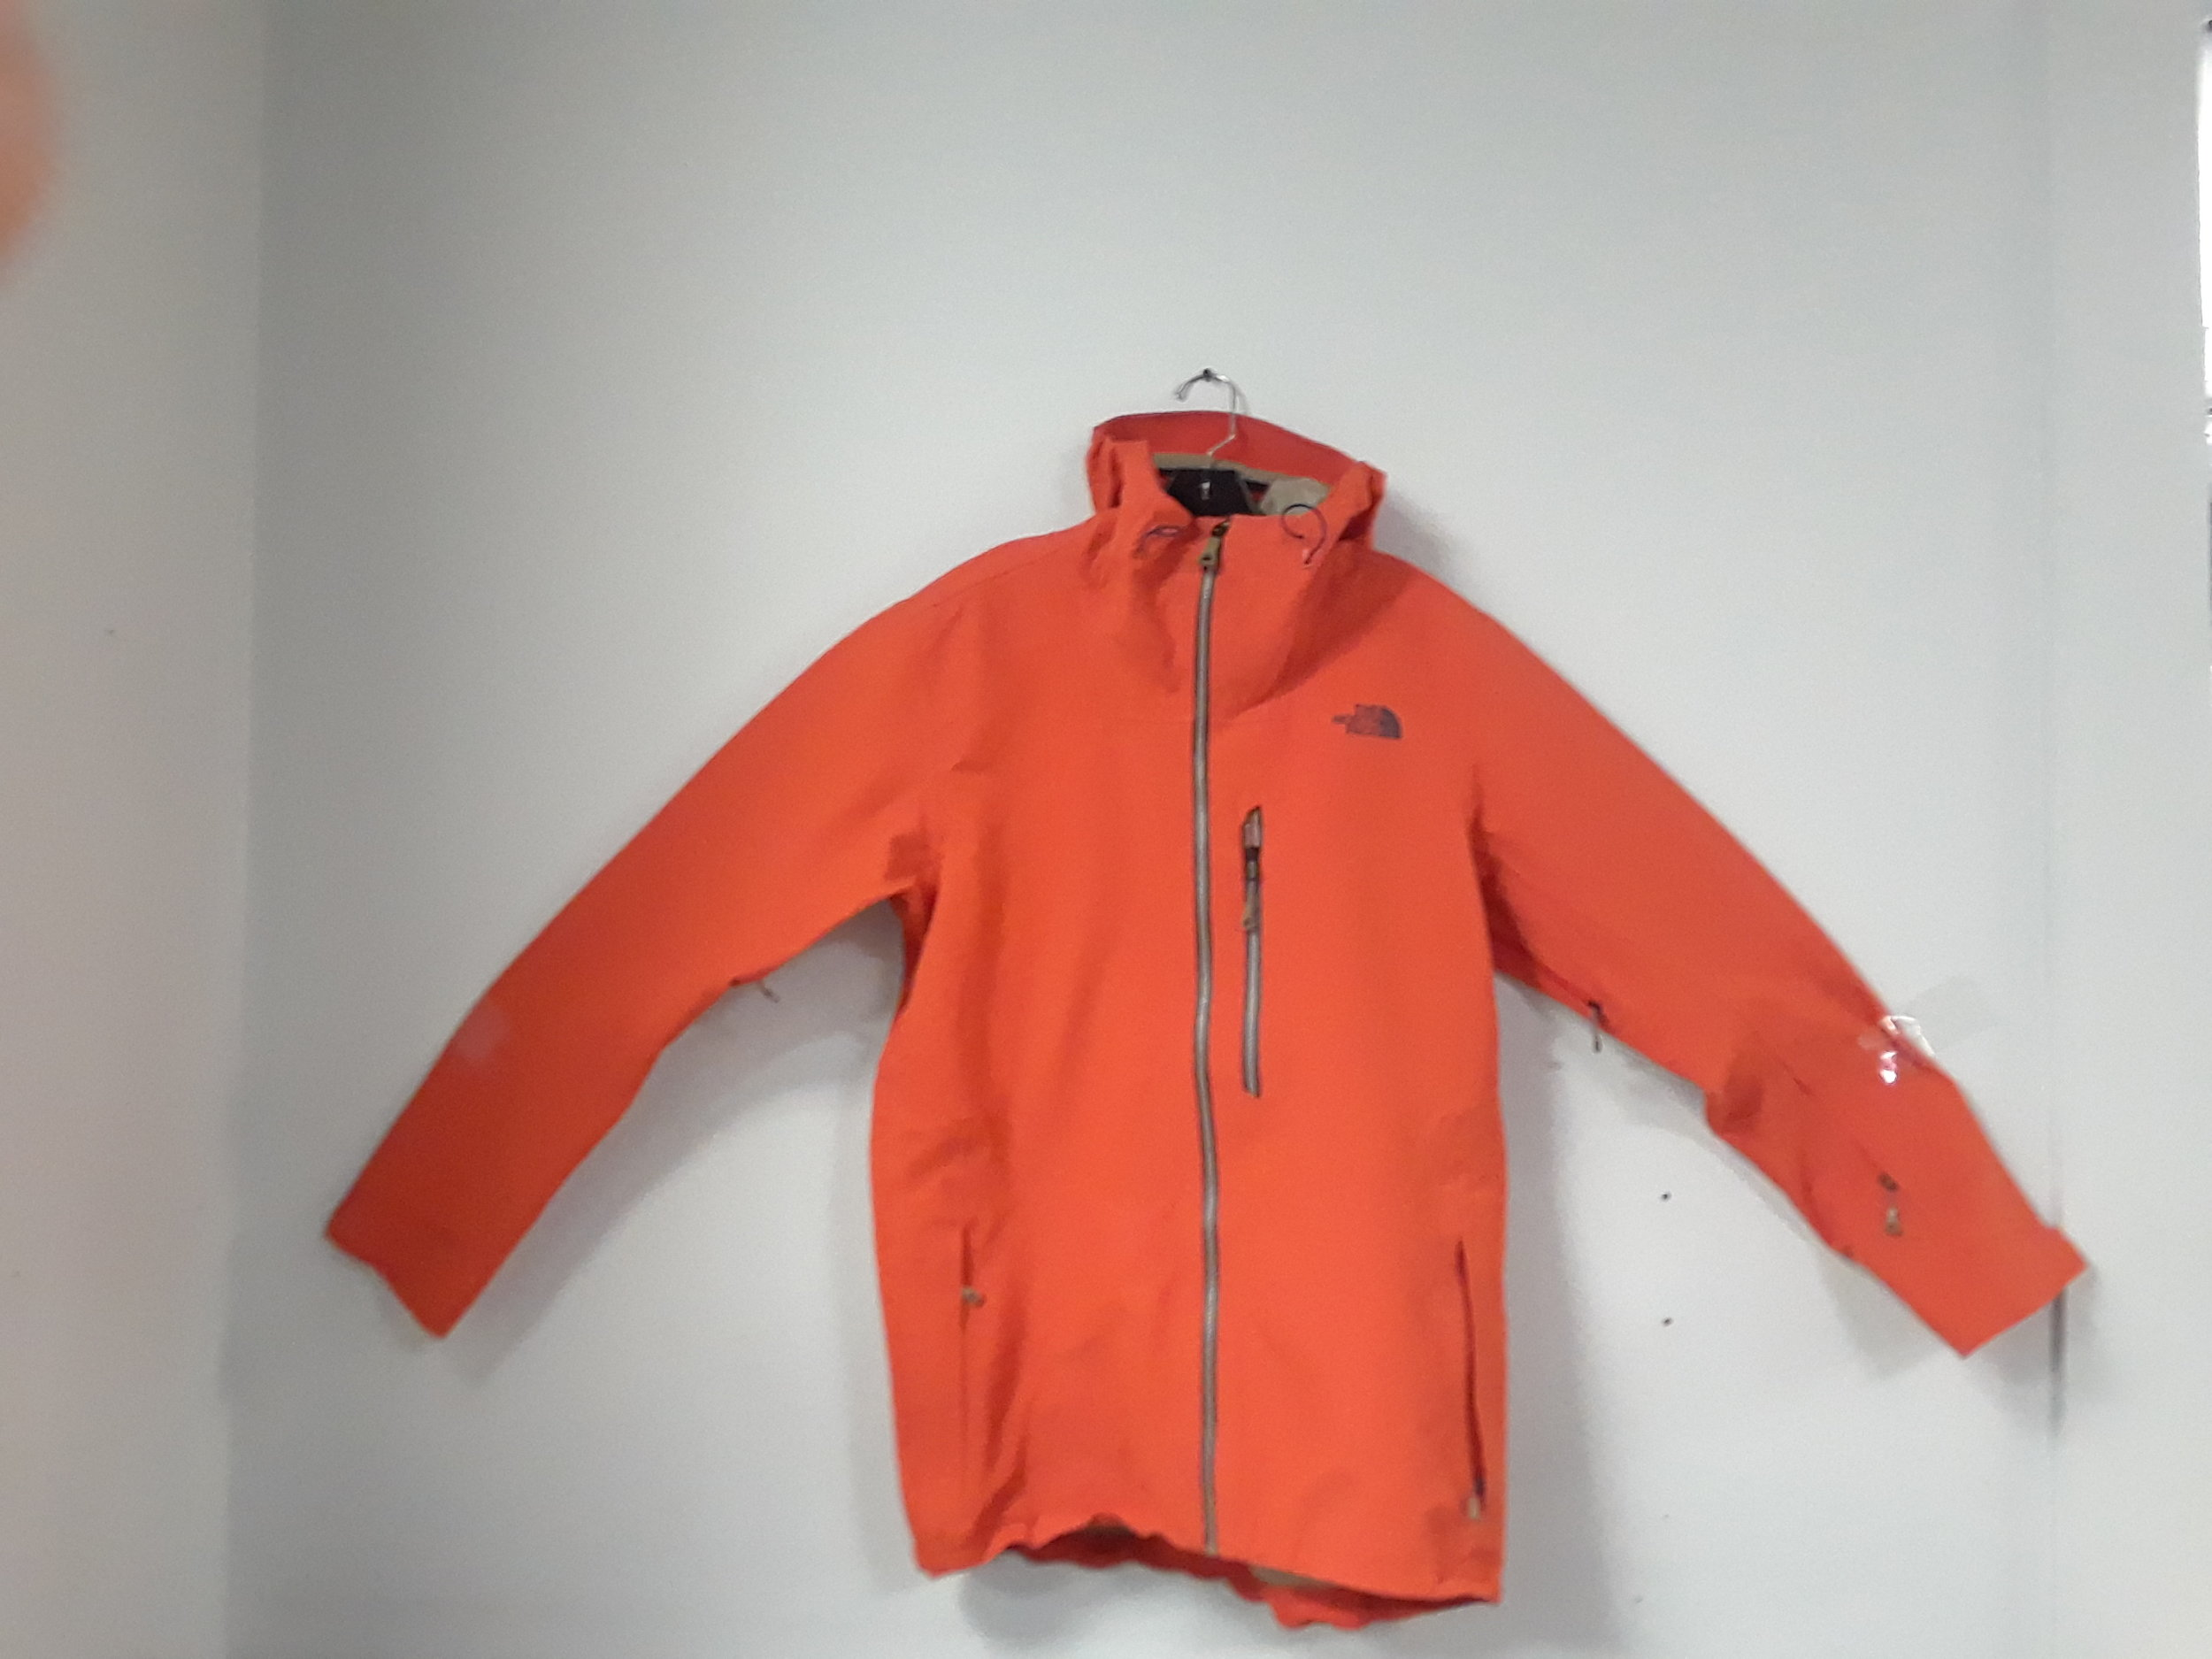 The North Face's Steep Series jackets are some of the most durable jackets we've ever seen. Made with an ultra dry but flexible fabric you'll be covered in all terrains while doing any winter sport. MSRP for the jacket is listed at $450 but we have it at $199! The size is a men's medium.